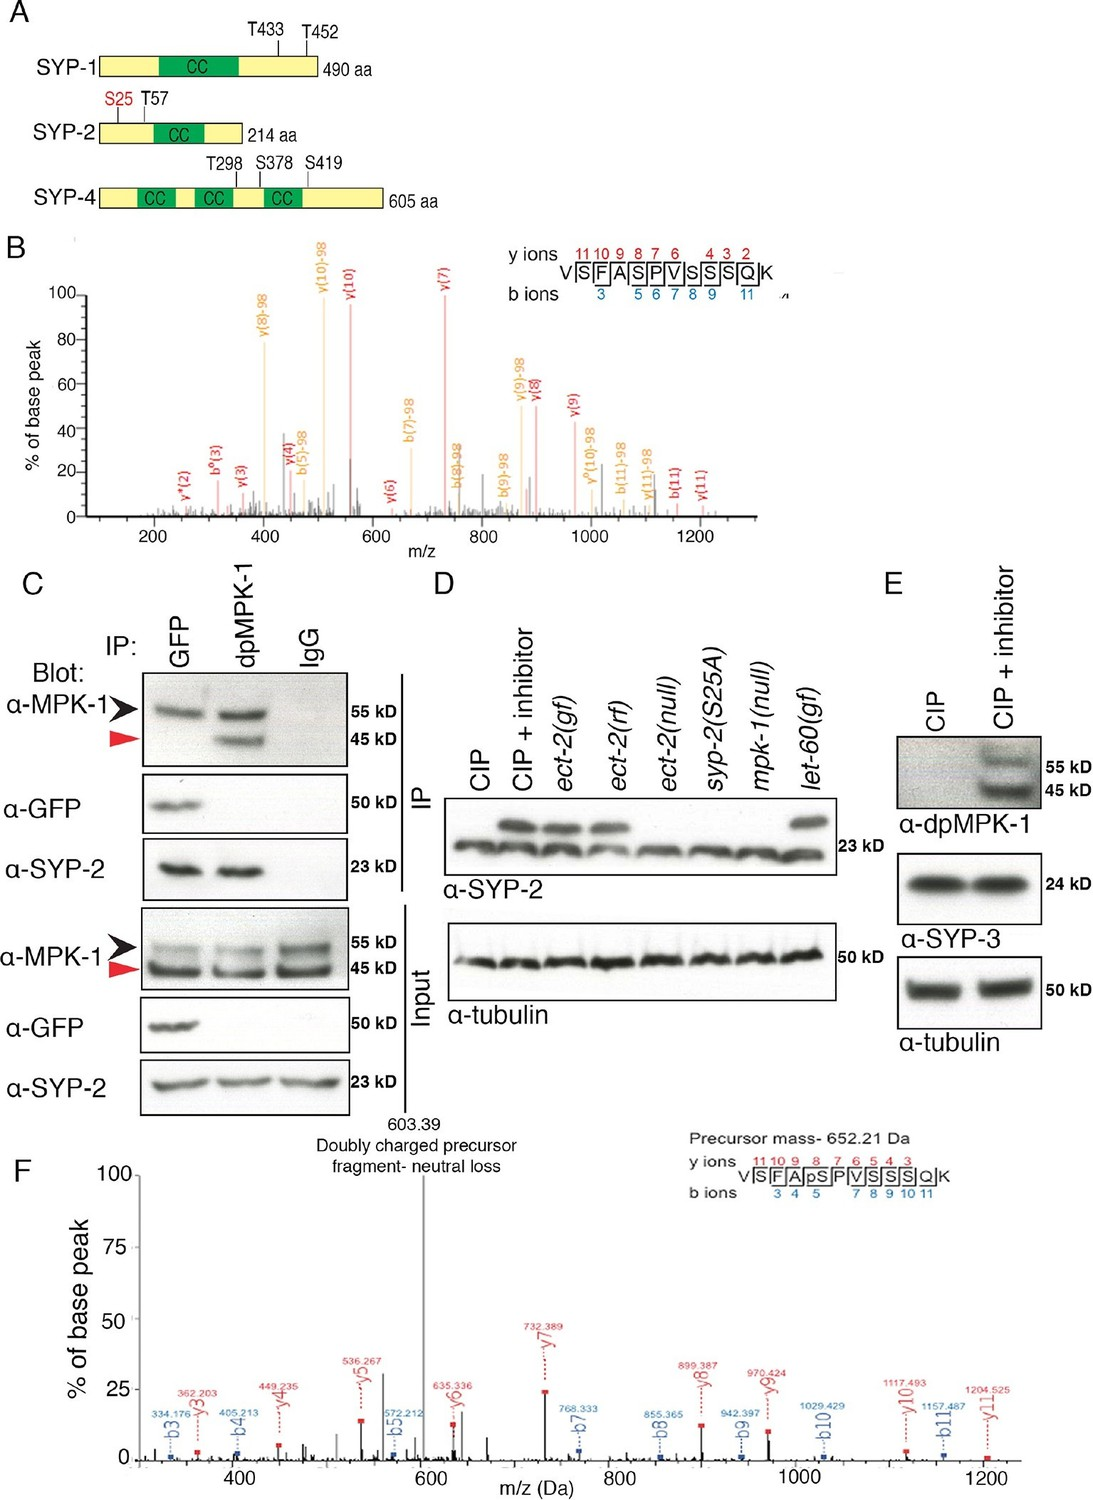 phosphorylation of syp is dependent on the map kinase pathway. the map kinase pathway coordinates crossover designation with